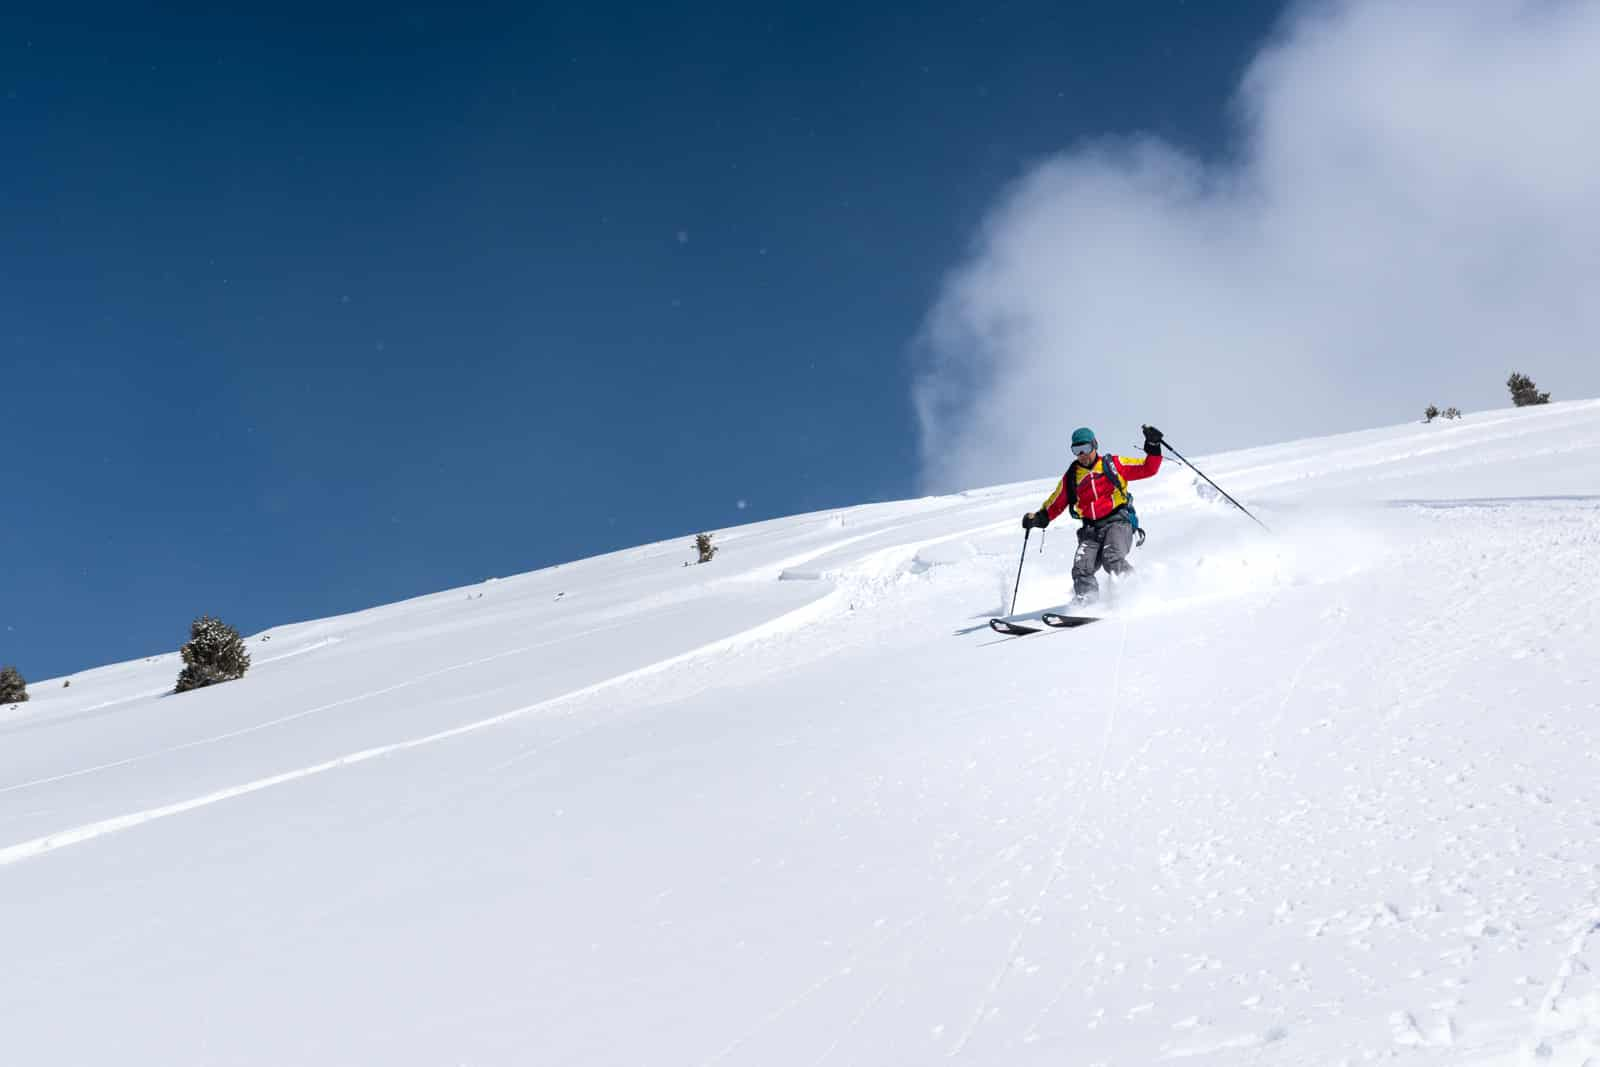 Backcountry skiing in powder in Boz Uchuk, Kyrgyzstan